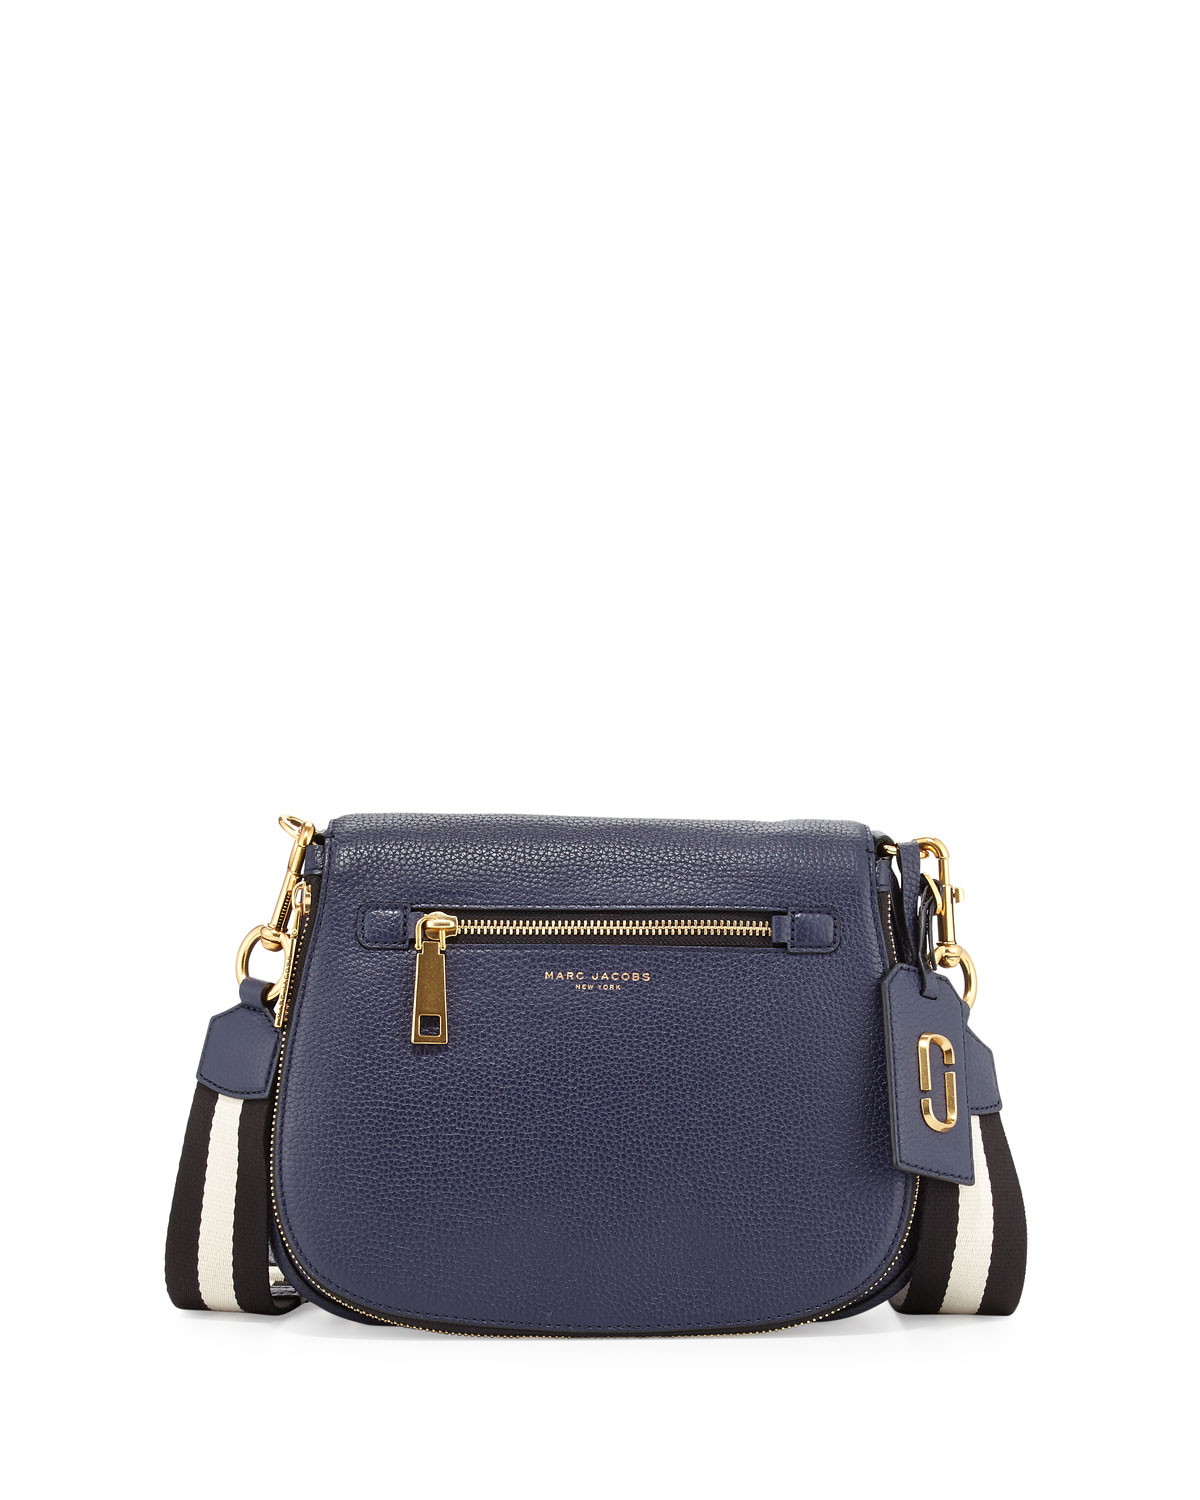 0312e51ad36c8 MARC by Marc Jacobs Gotham Leather Saddle Bag